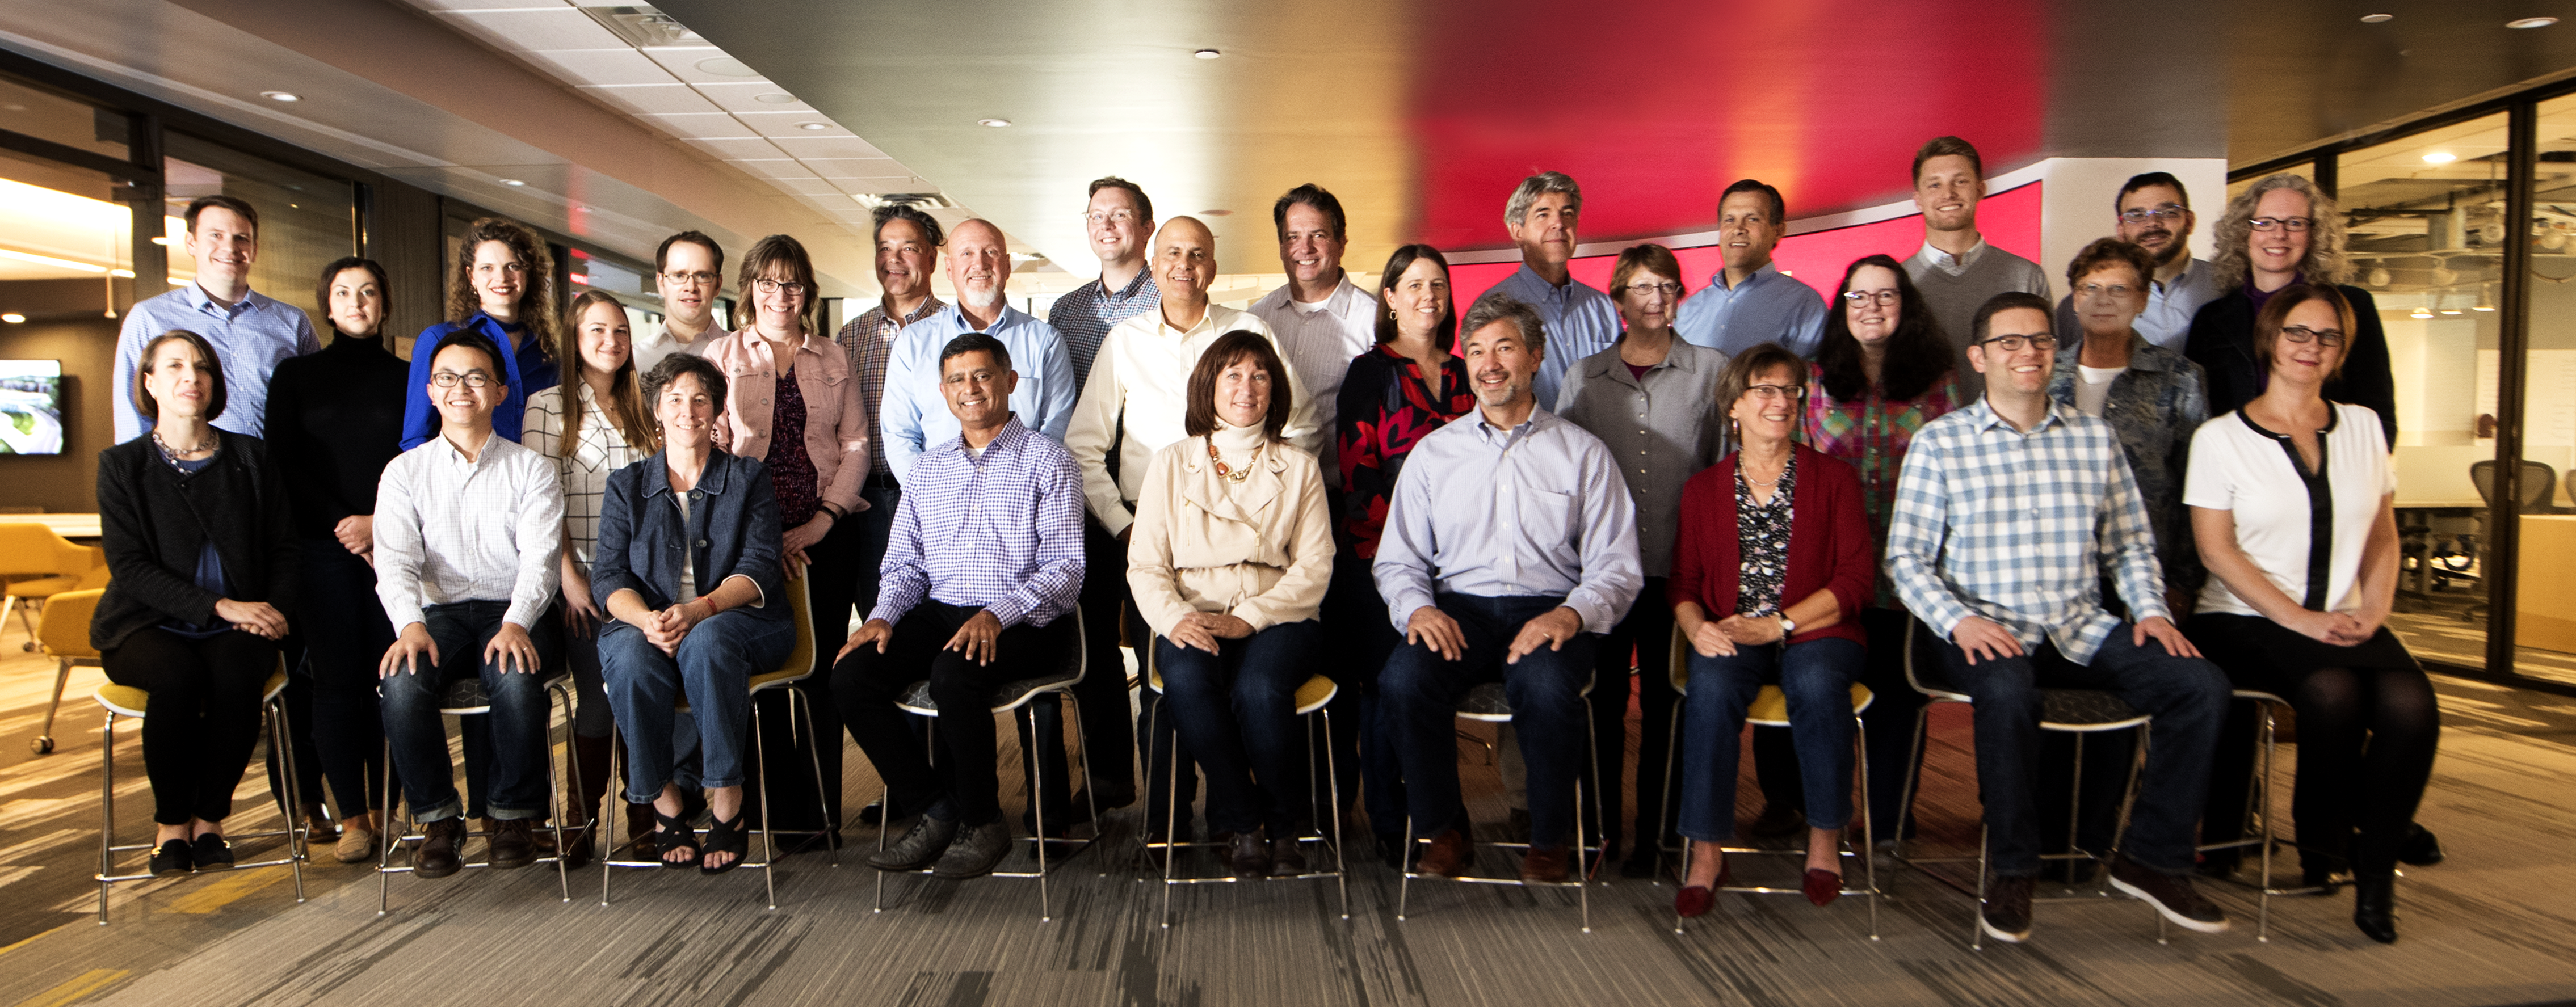 29 staff members of Technology Commercialization standing/sitting together for photo